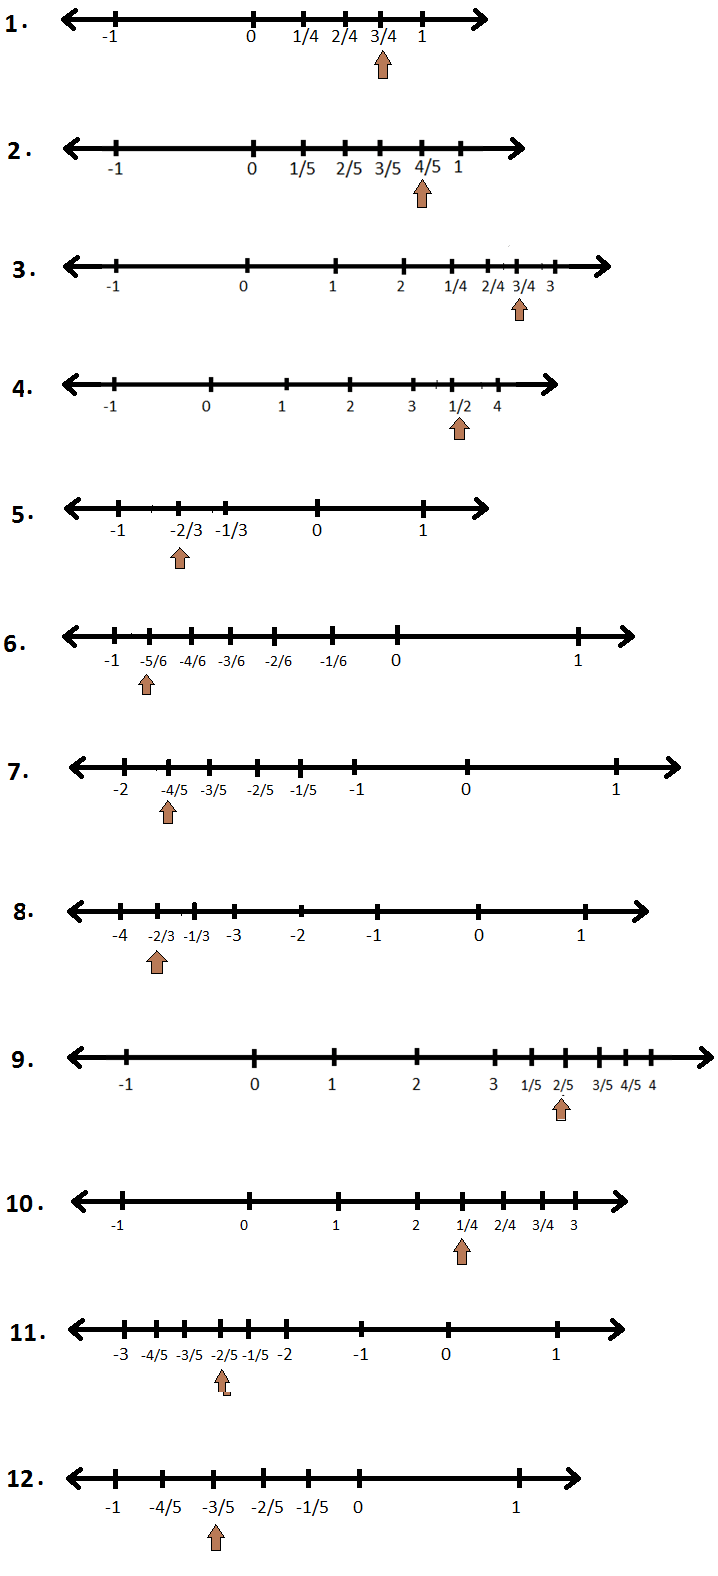 medium resolution of Worksheet on Representation of Rational Numbers on the Number Line   Answers